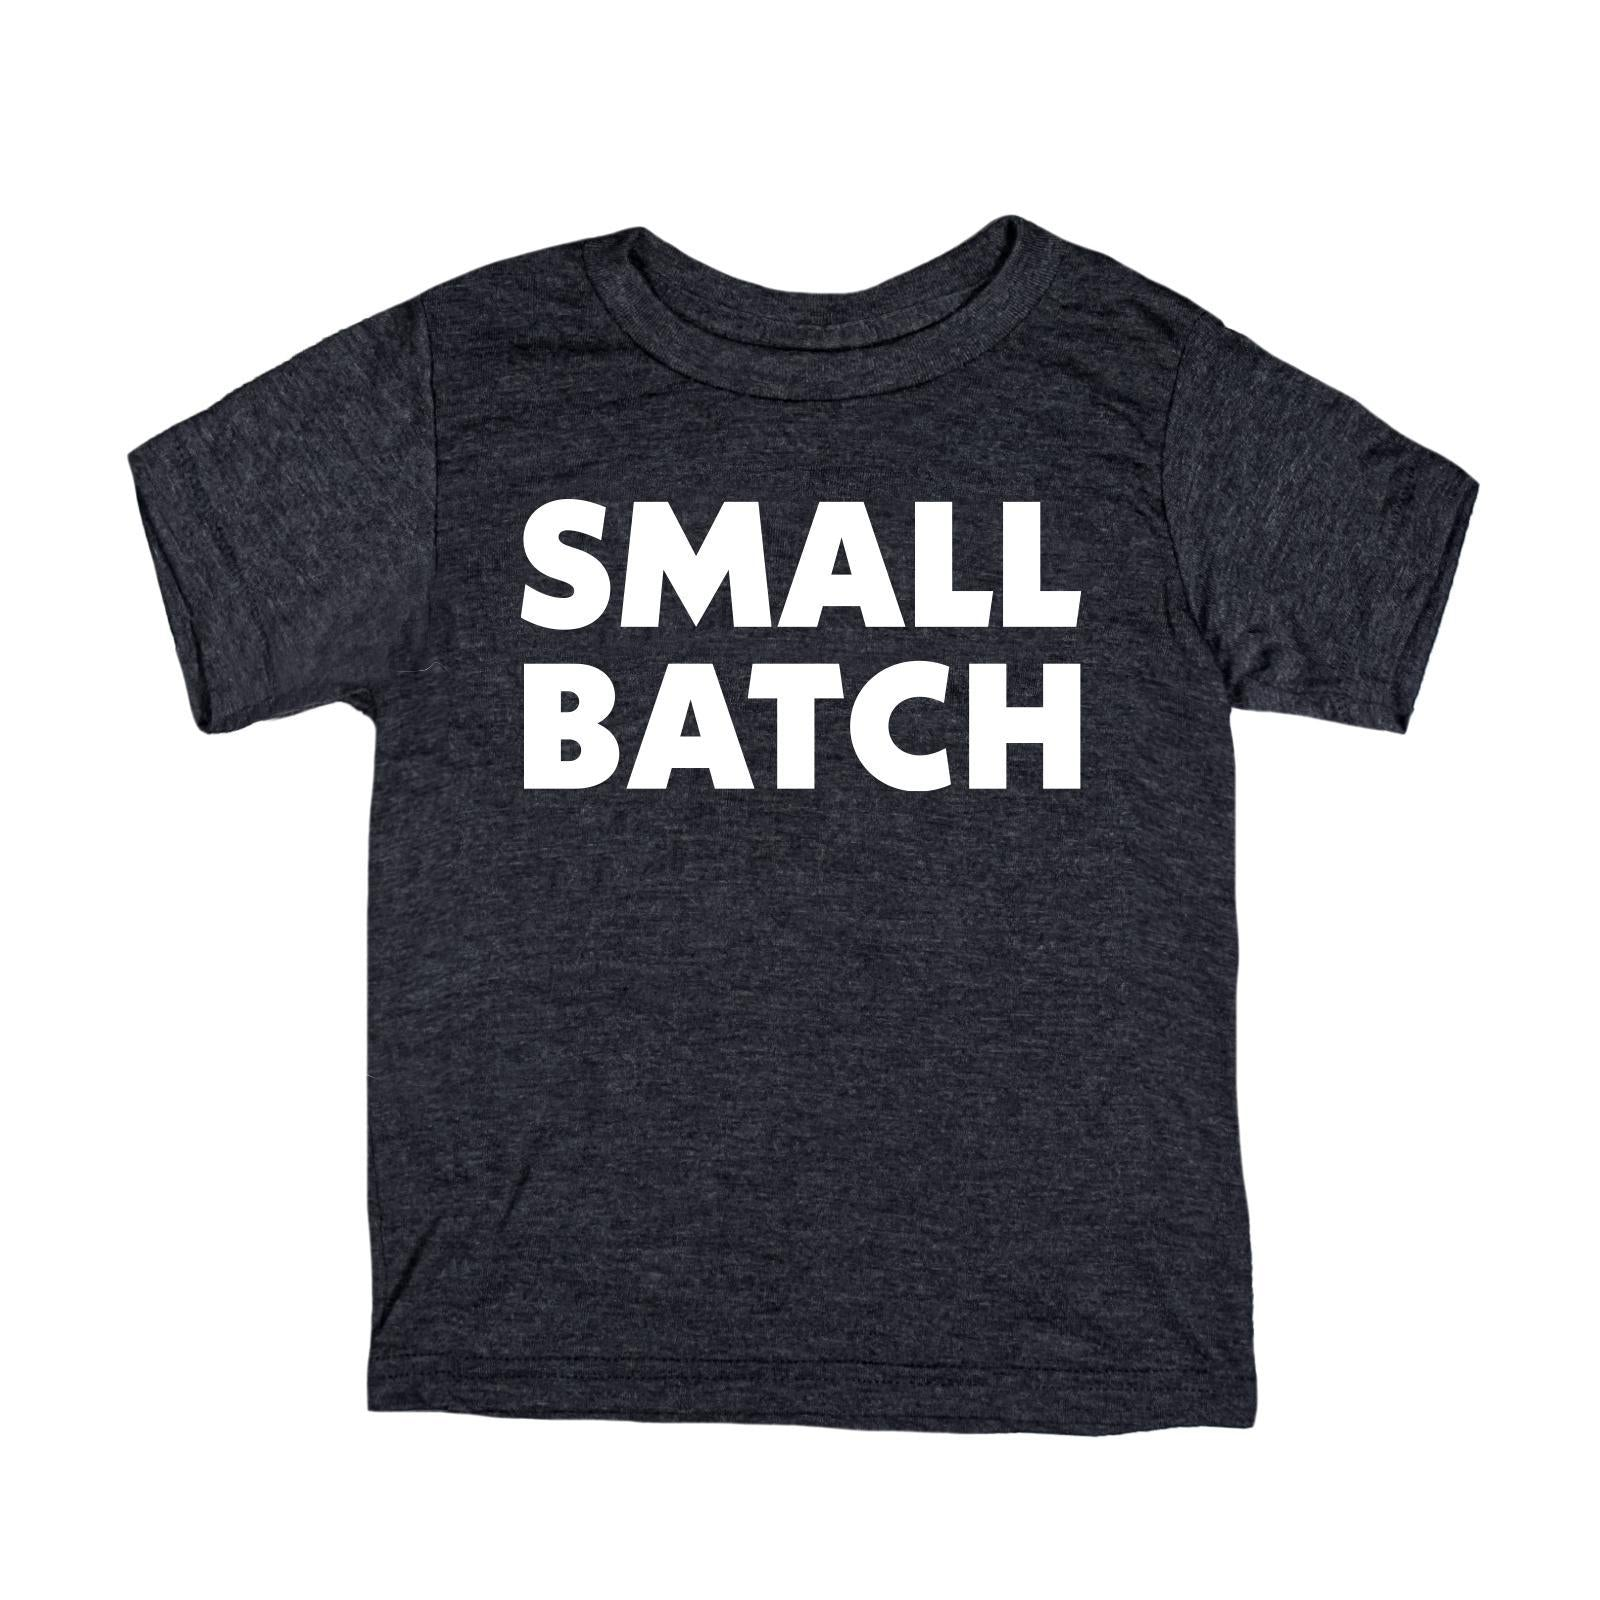 Small Batch Kids T-Shirt-Kids-KY for KY Store